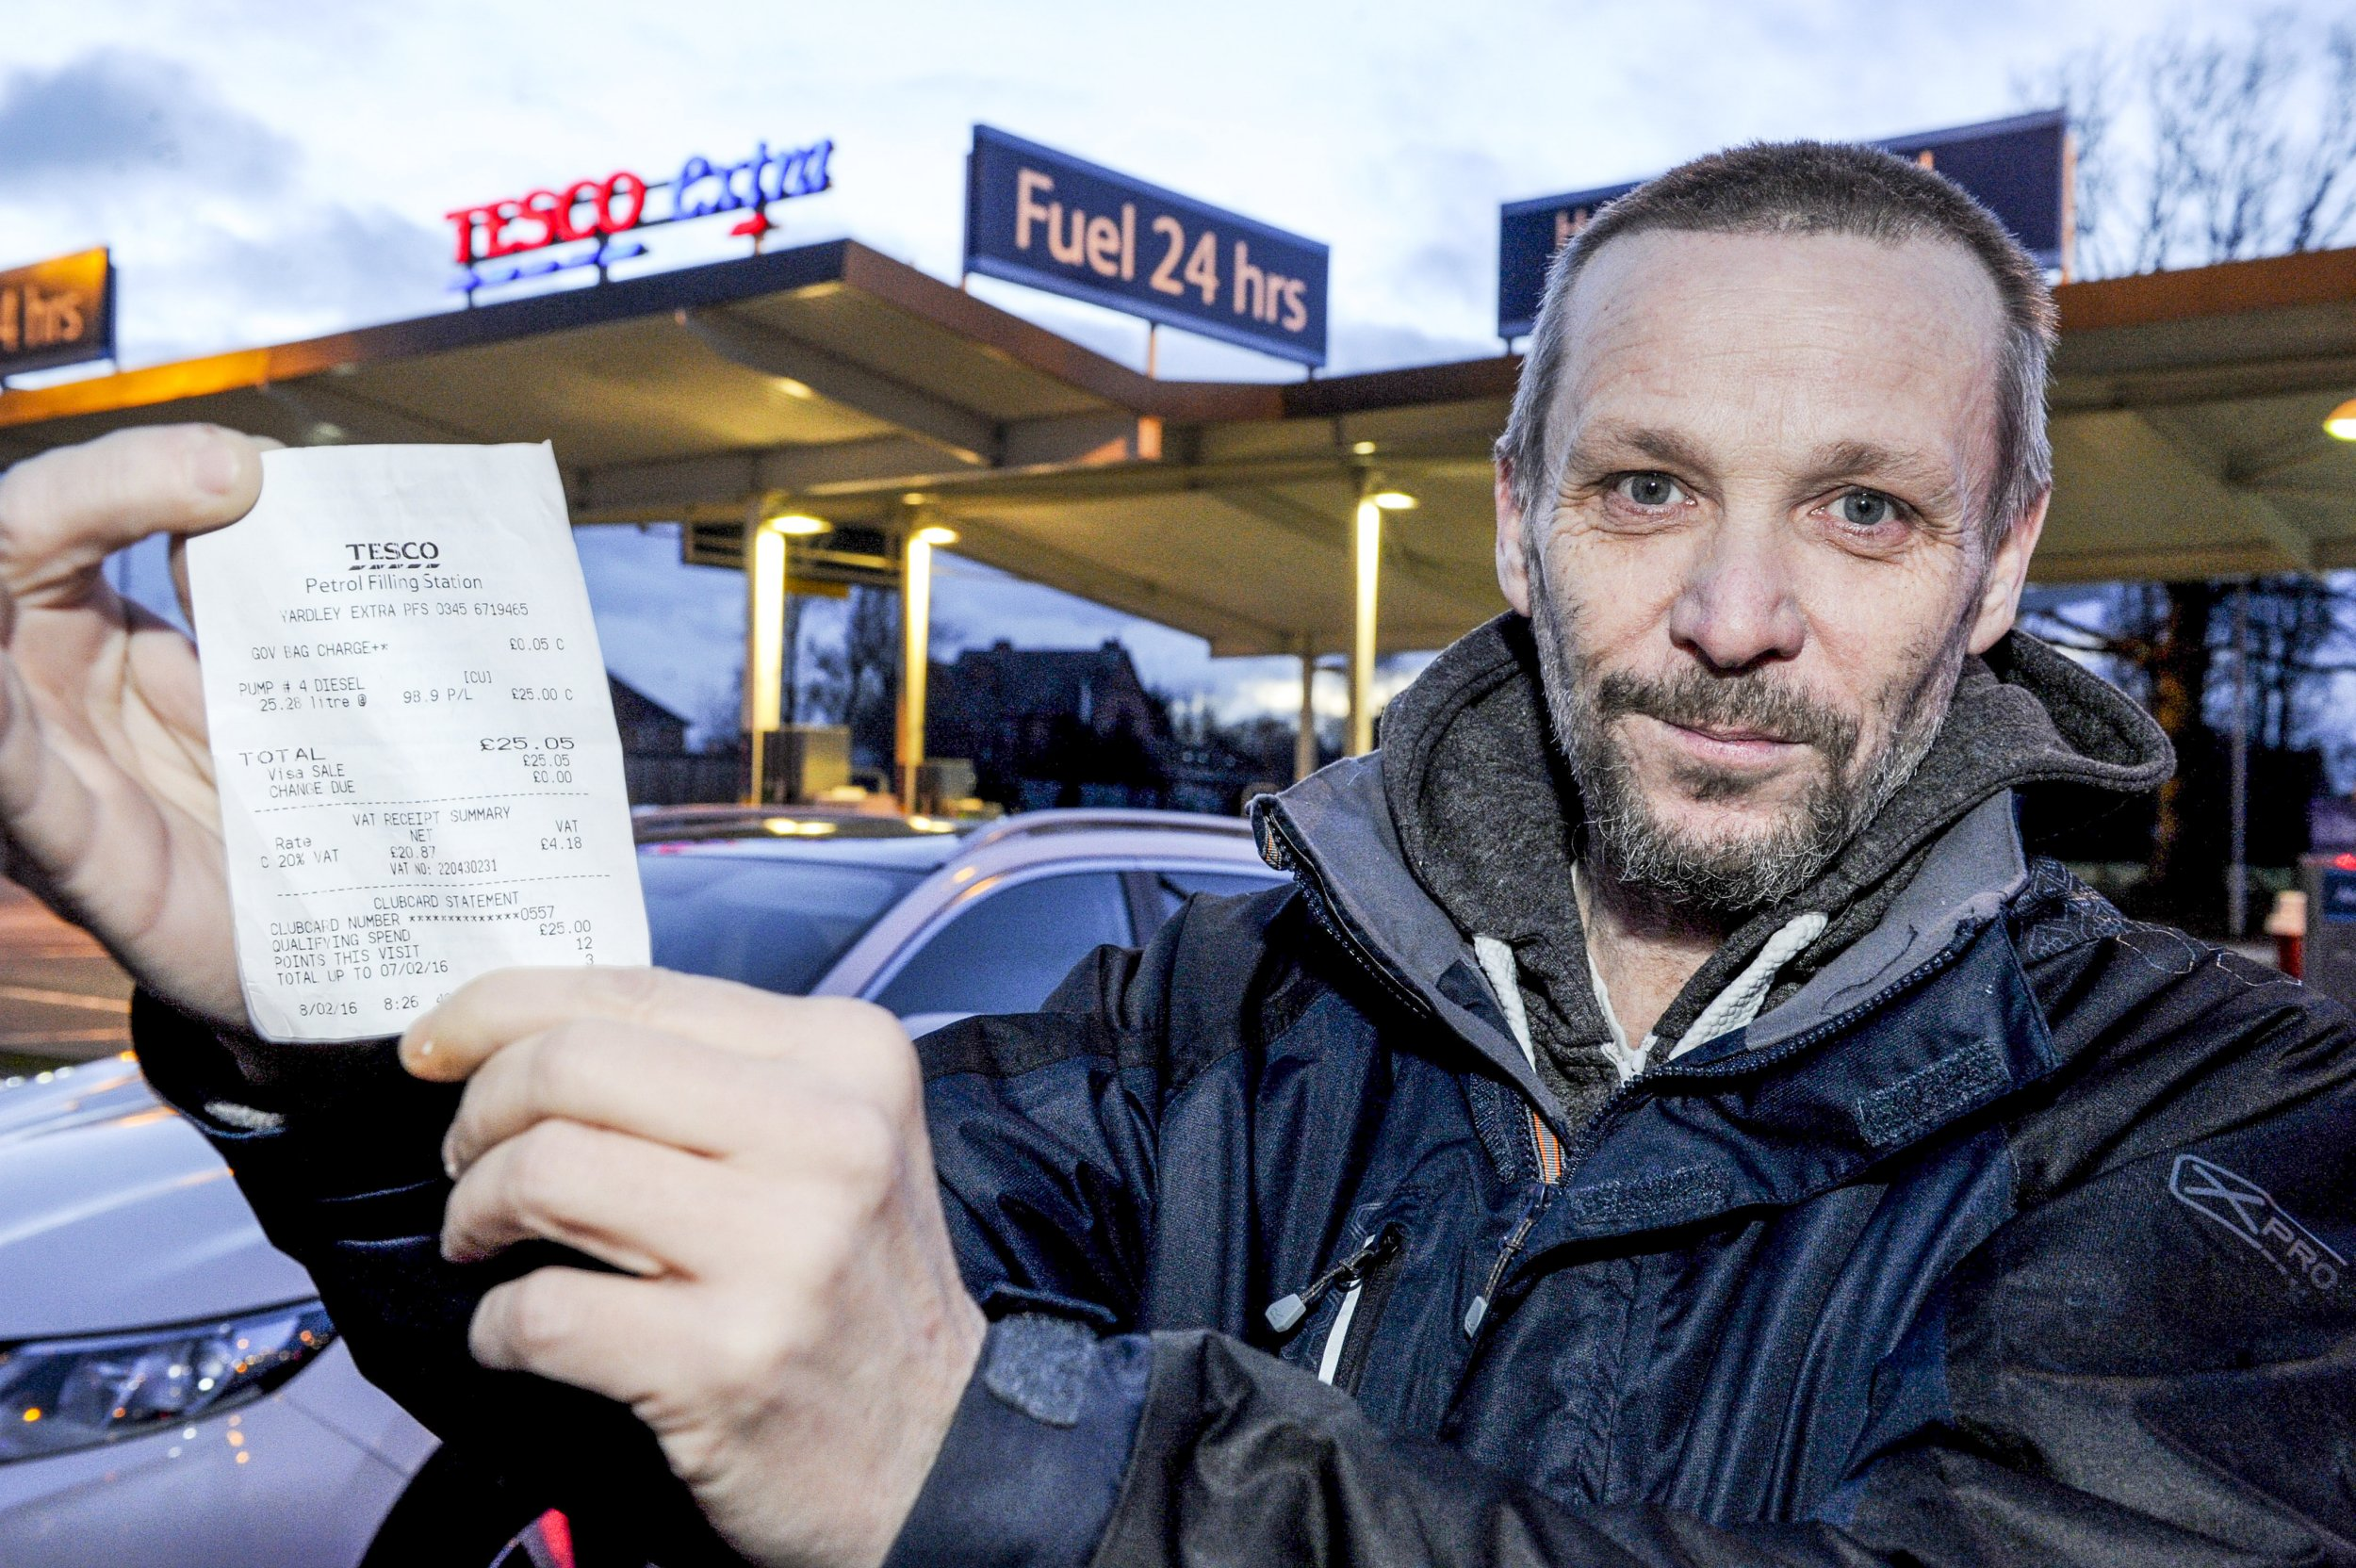 Tesco charged man 5p for carrier bag when he filled up car with petrol